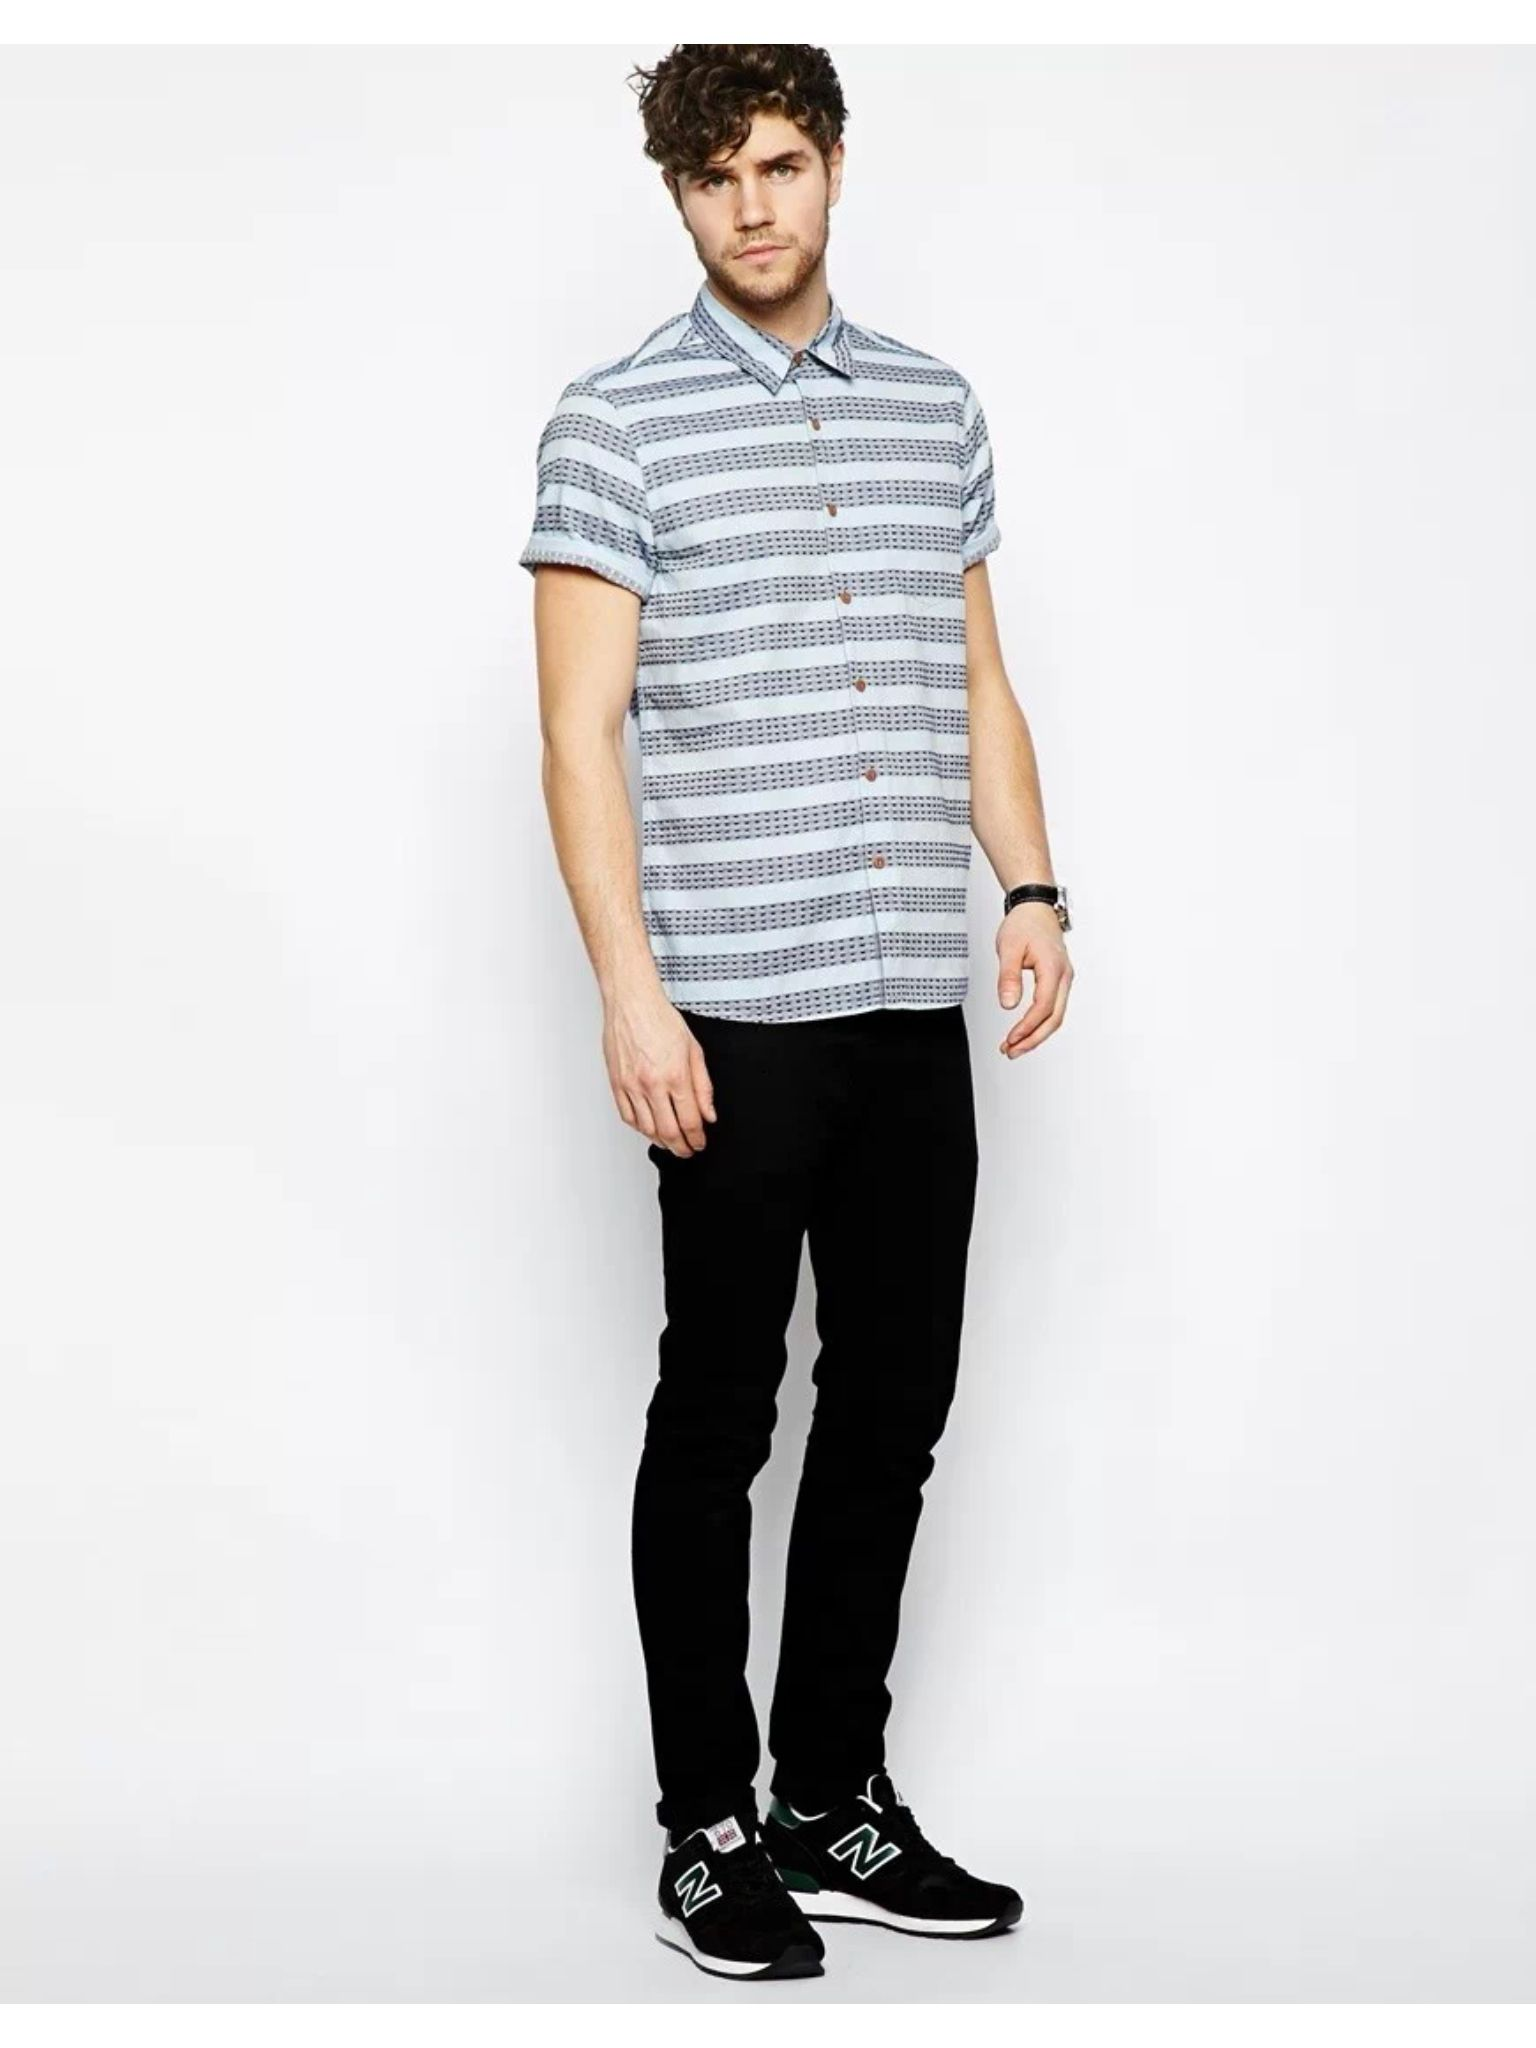 Pin on Casual fashion for men yw D